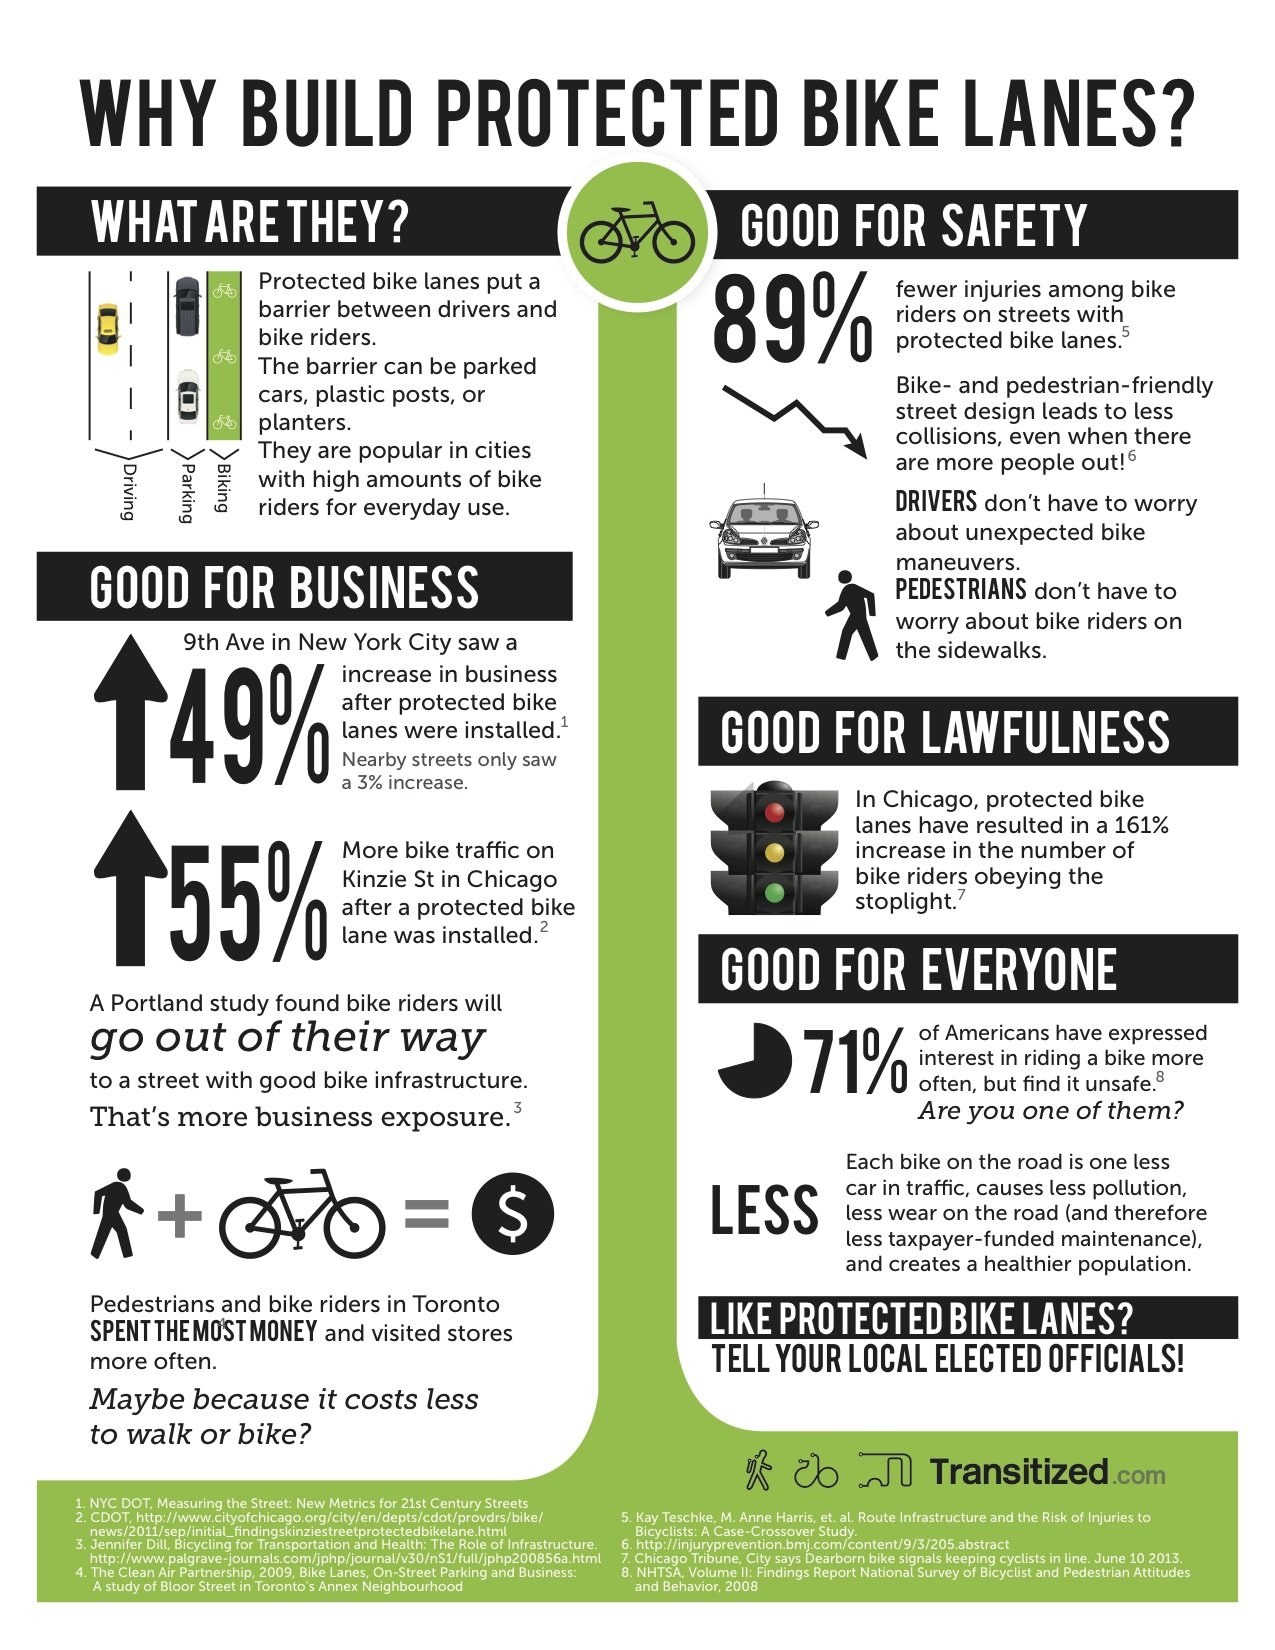 Benefits of Protected Bike Lanes